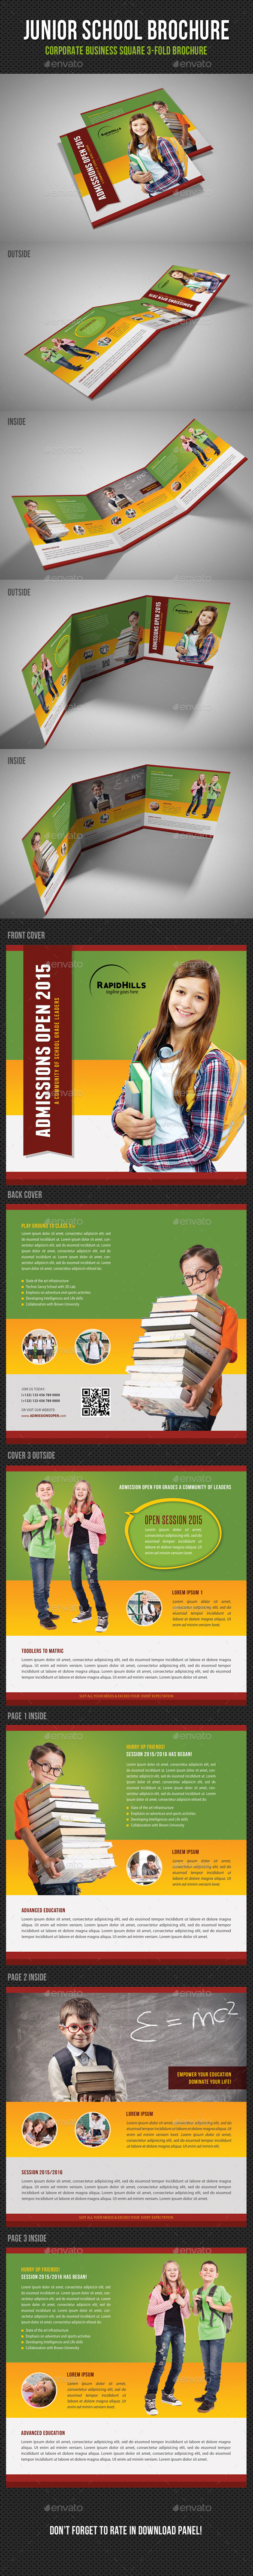 GraphicRiver Junior School Square 3-Fold Brochure V01 11244396